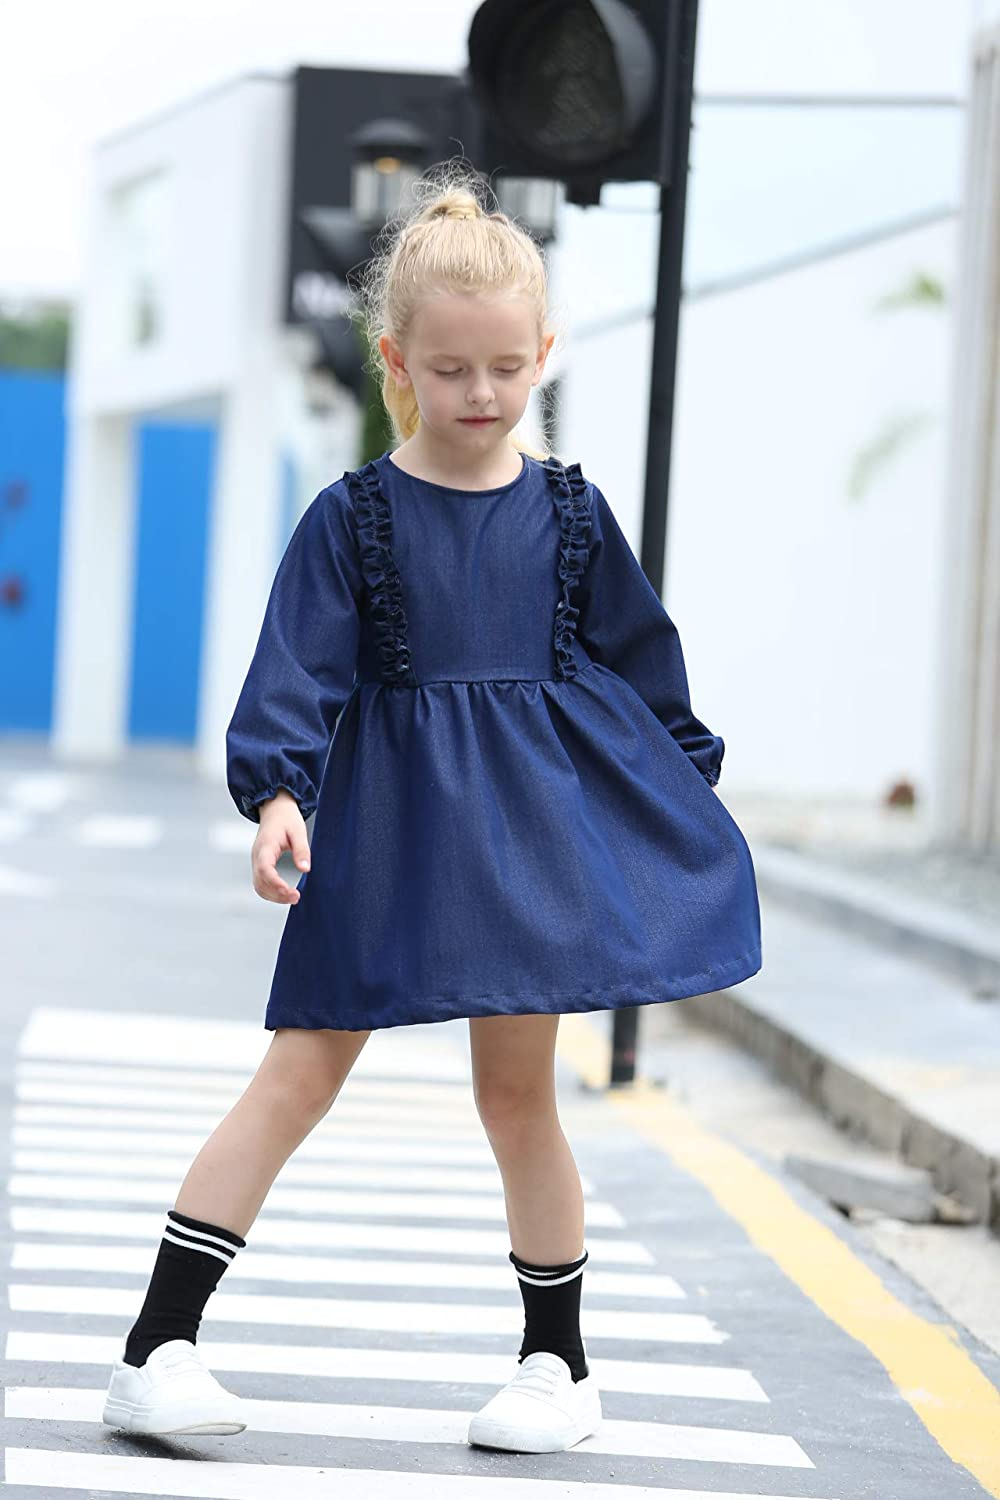 Toddler Dress for Girls Long Sleeve Cotton Princess Casual Ruffle Frock